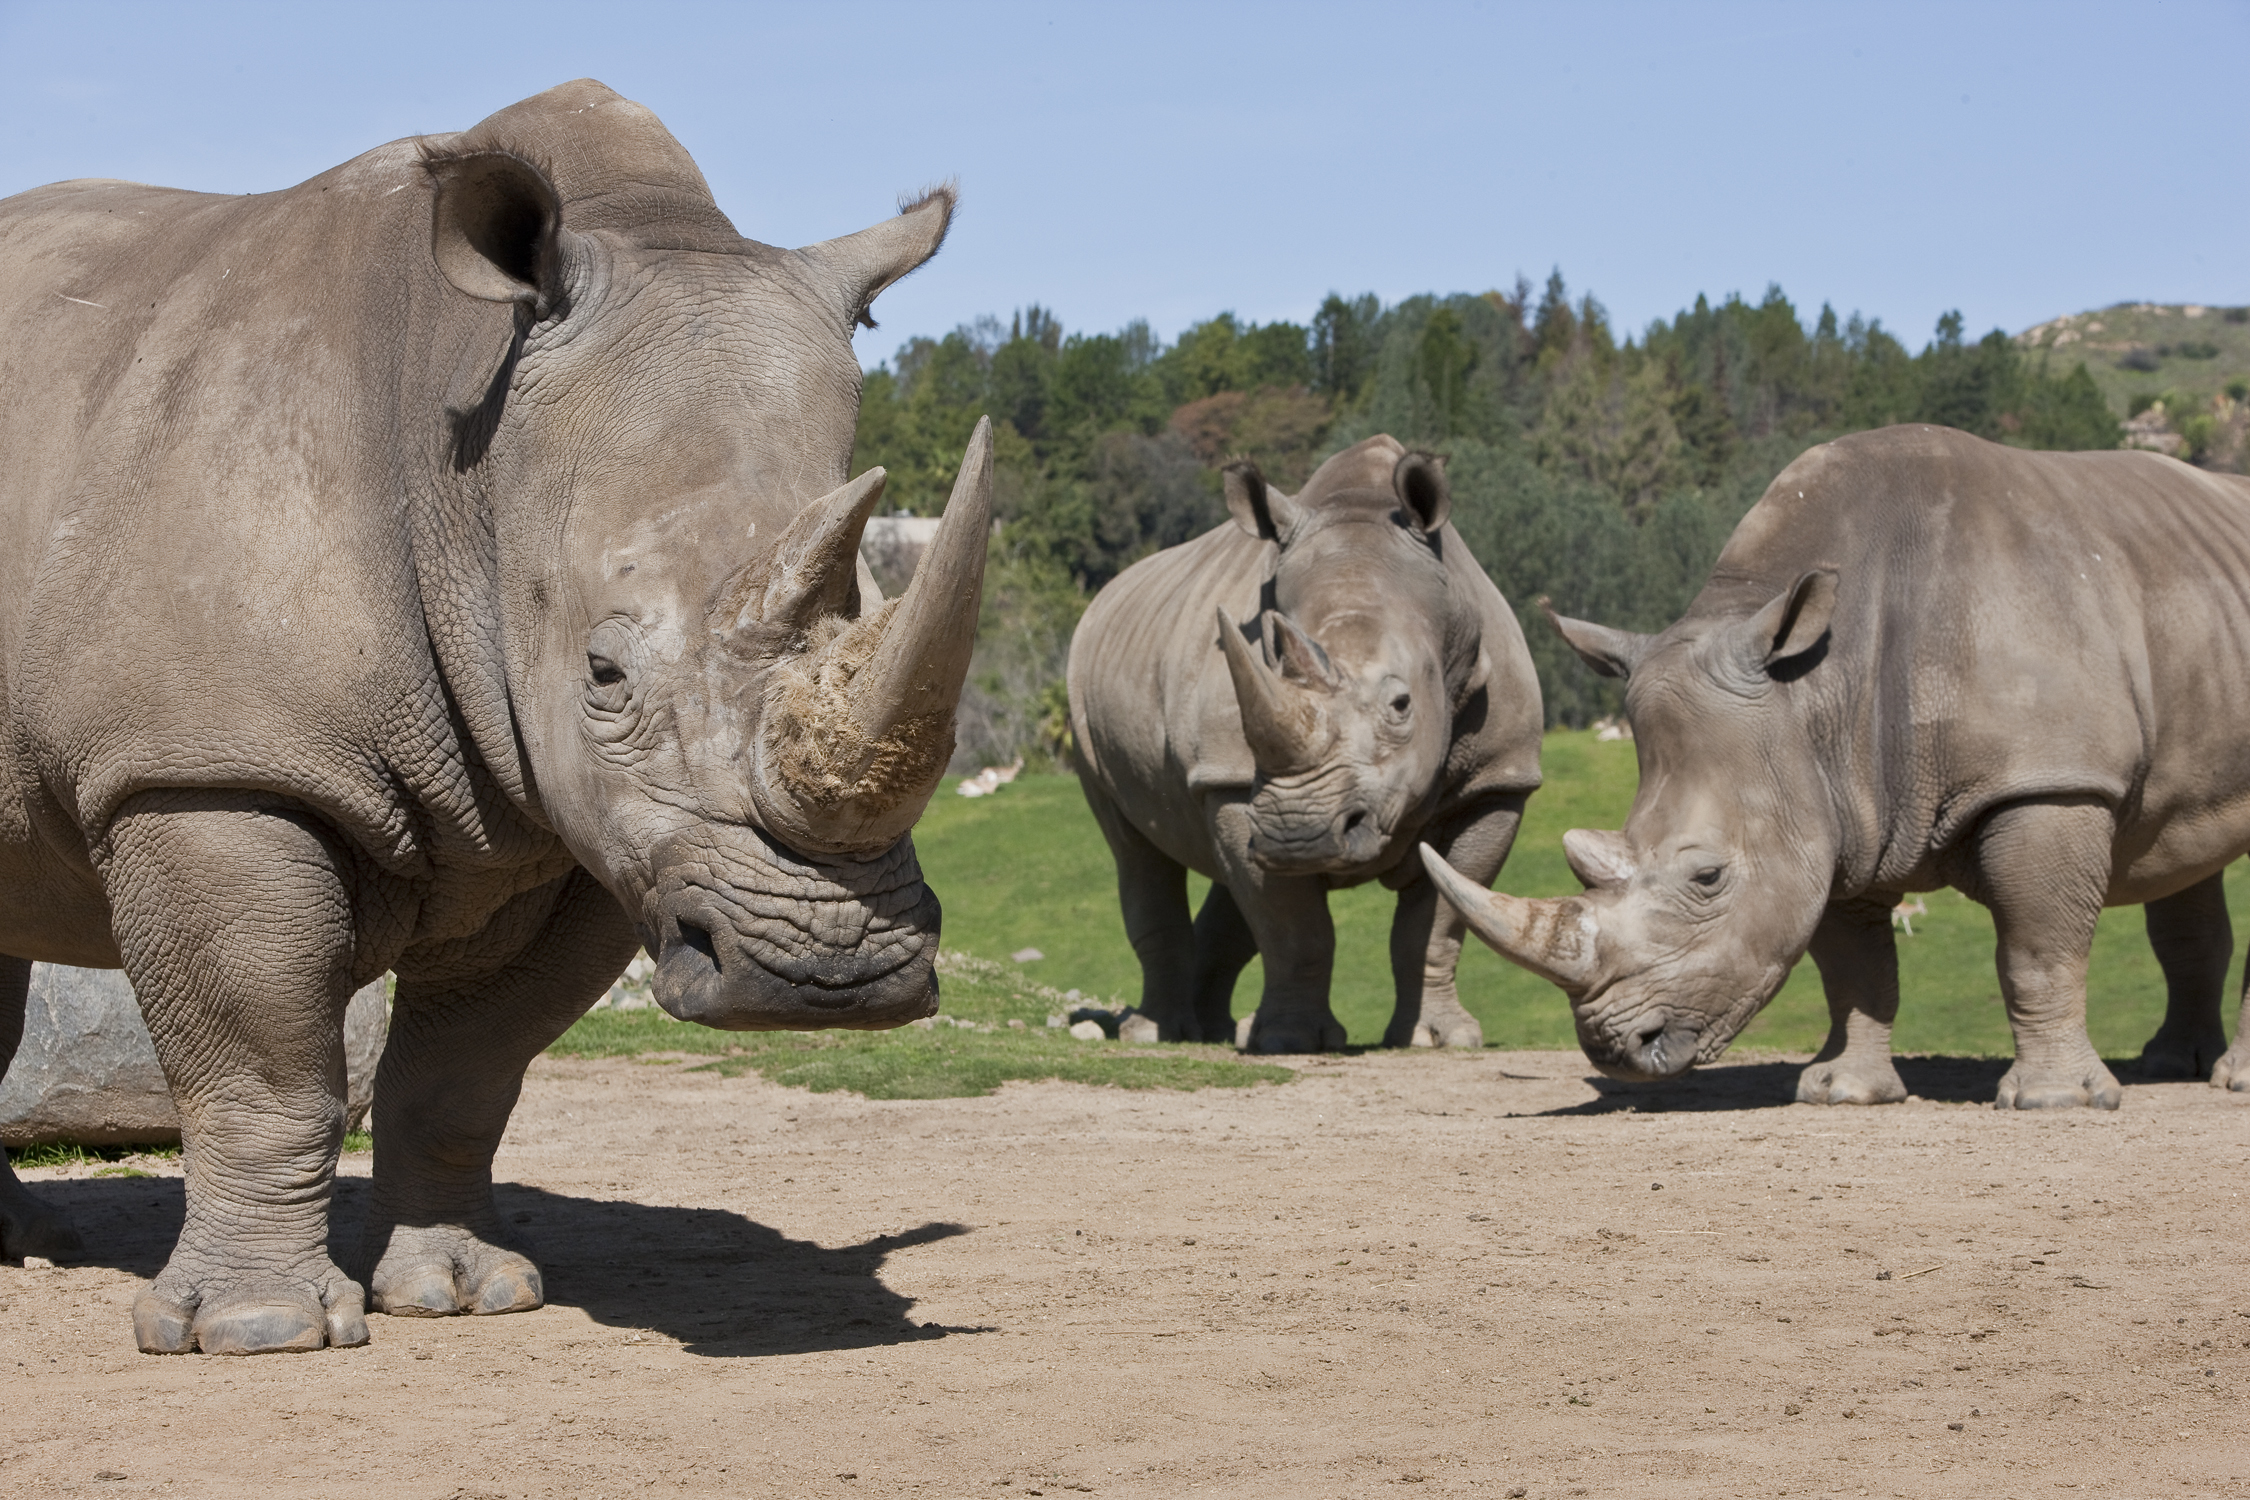 the horns of a rhino The reversal was not officially announced, but revealed in a cabinet notice that detailed plans to control the trade of rhino horns and tiger bones.